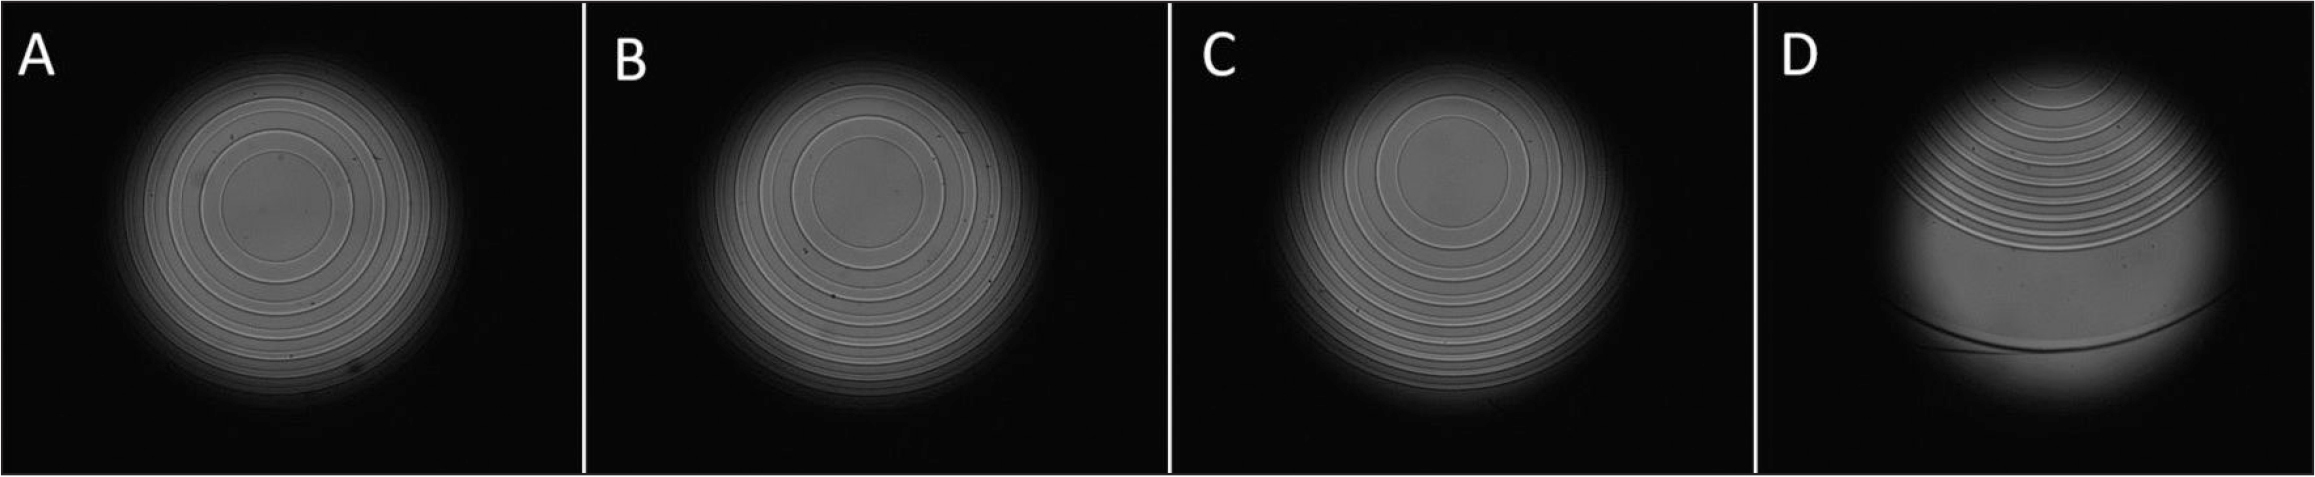 Photographs of a decentered trifocal supplementary lens by (A) 0.2, (B) 0.4, (C) 0.6, and (D) 1.8 mm.